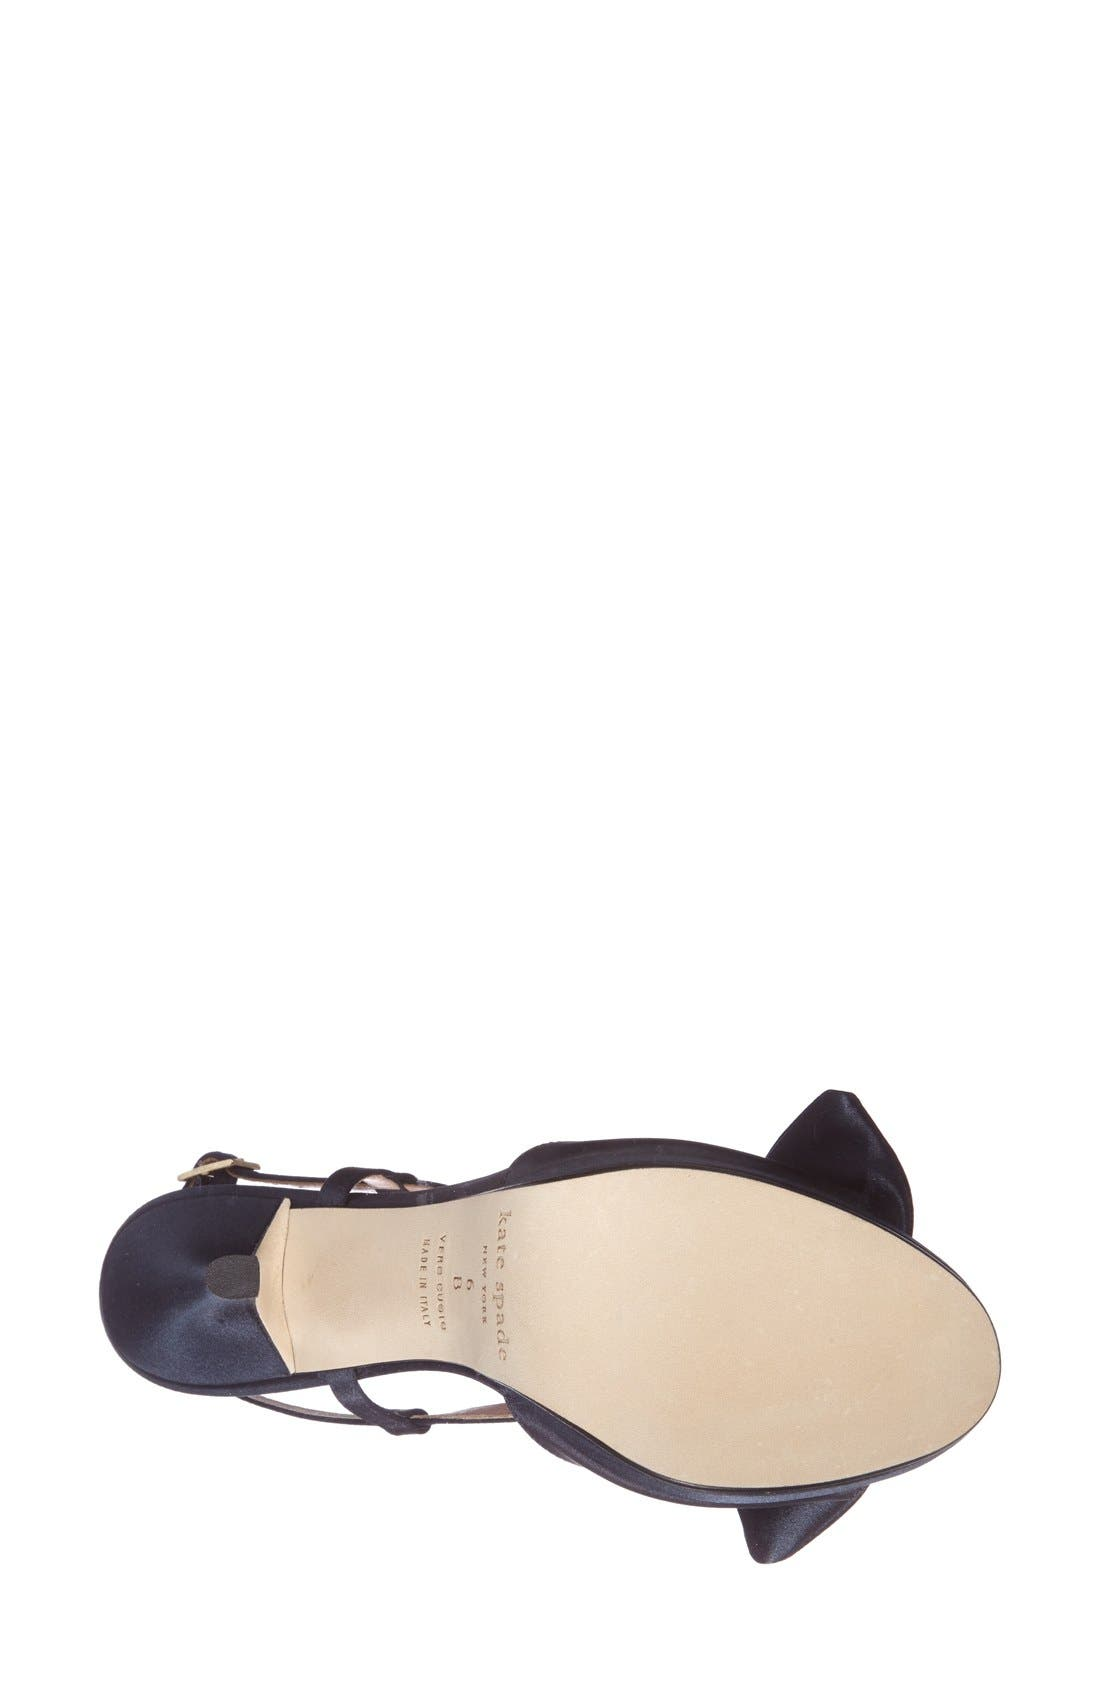 Alternate Image 4  - kate spade new york 'rezza' platform sandal (Women)